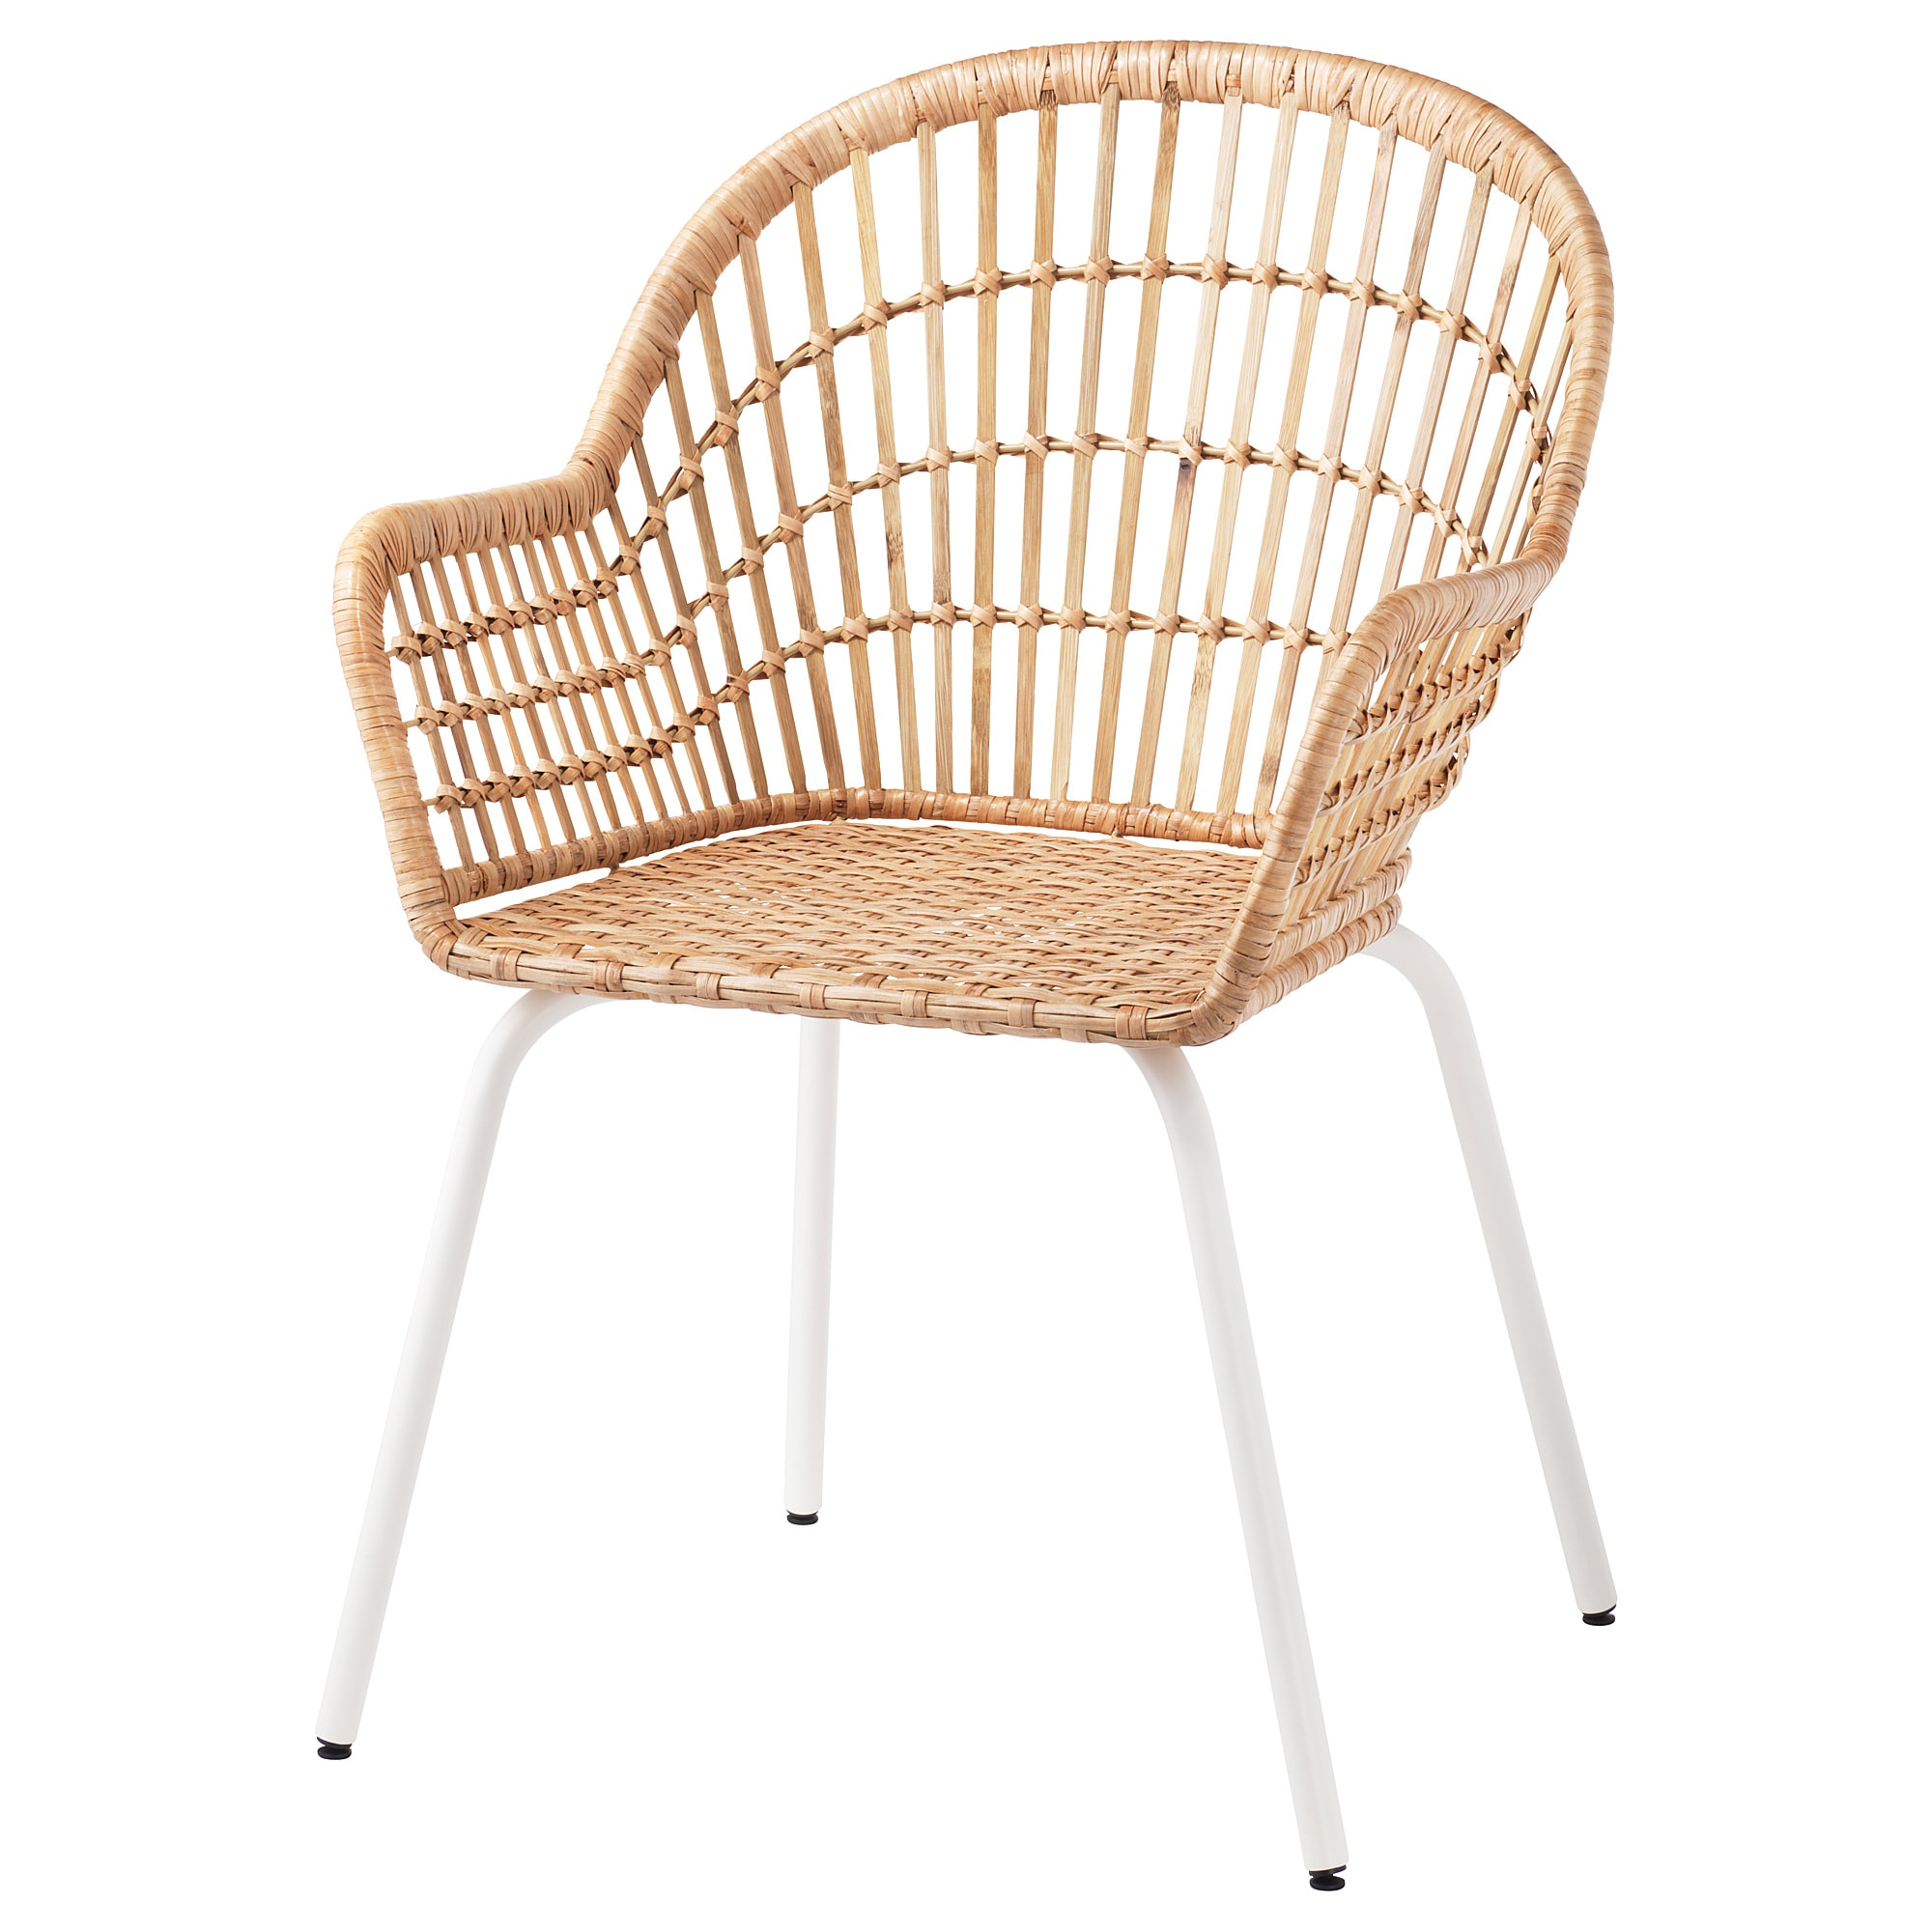 Rattan Ikea Nilsove Armchair Ikea Vermont Second Bedroom In 2019